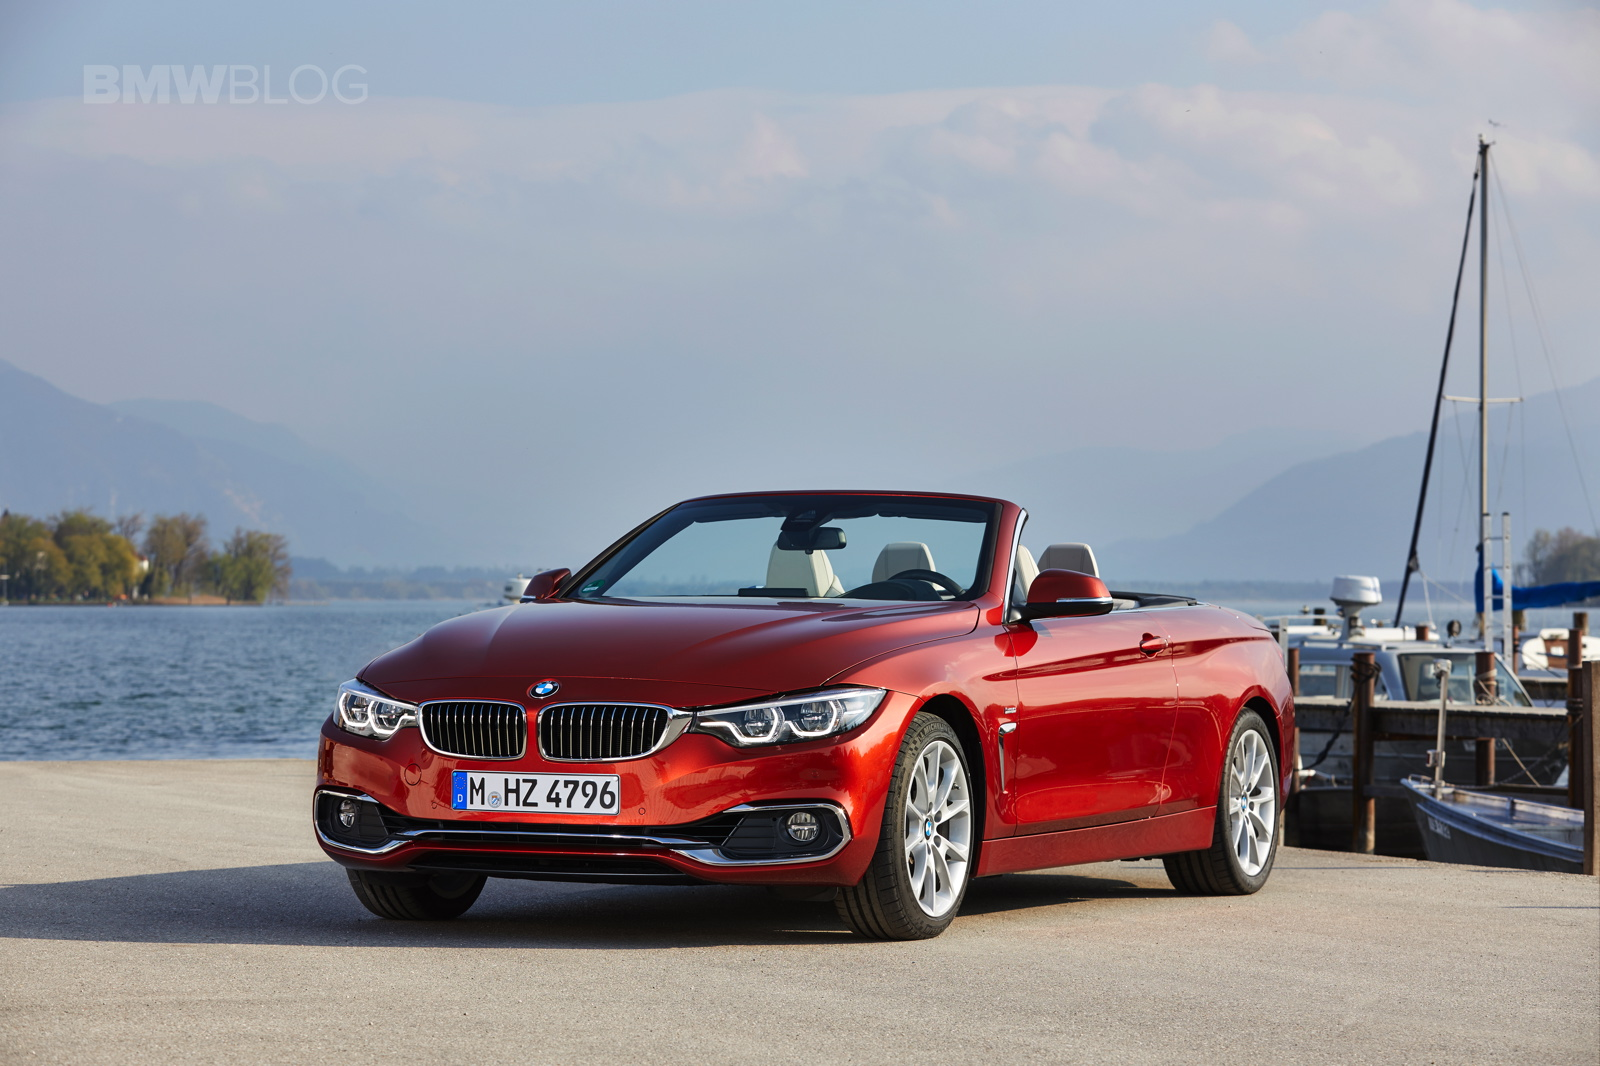 2017 BMW 4 Series Convertible test drive 27